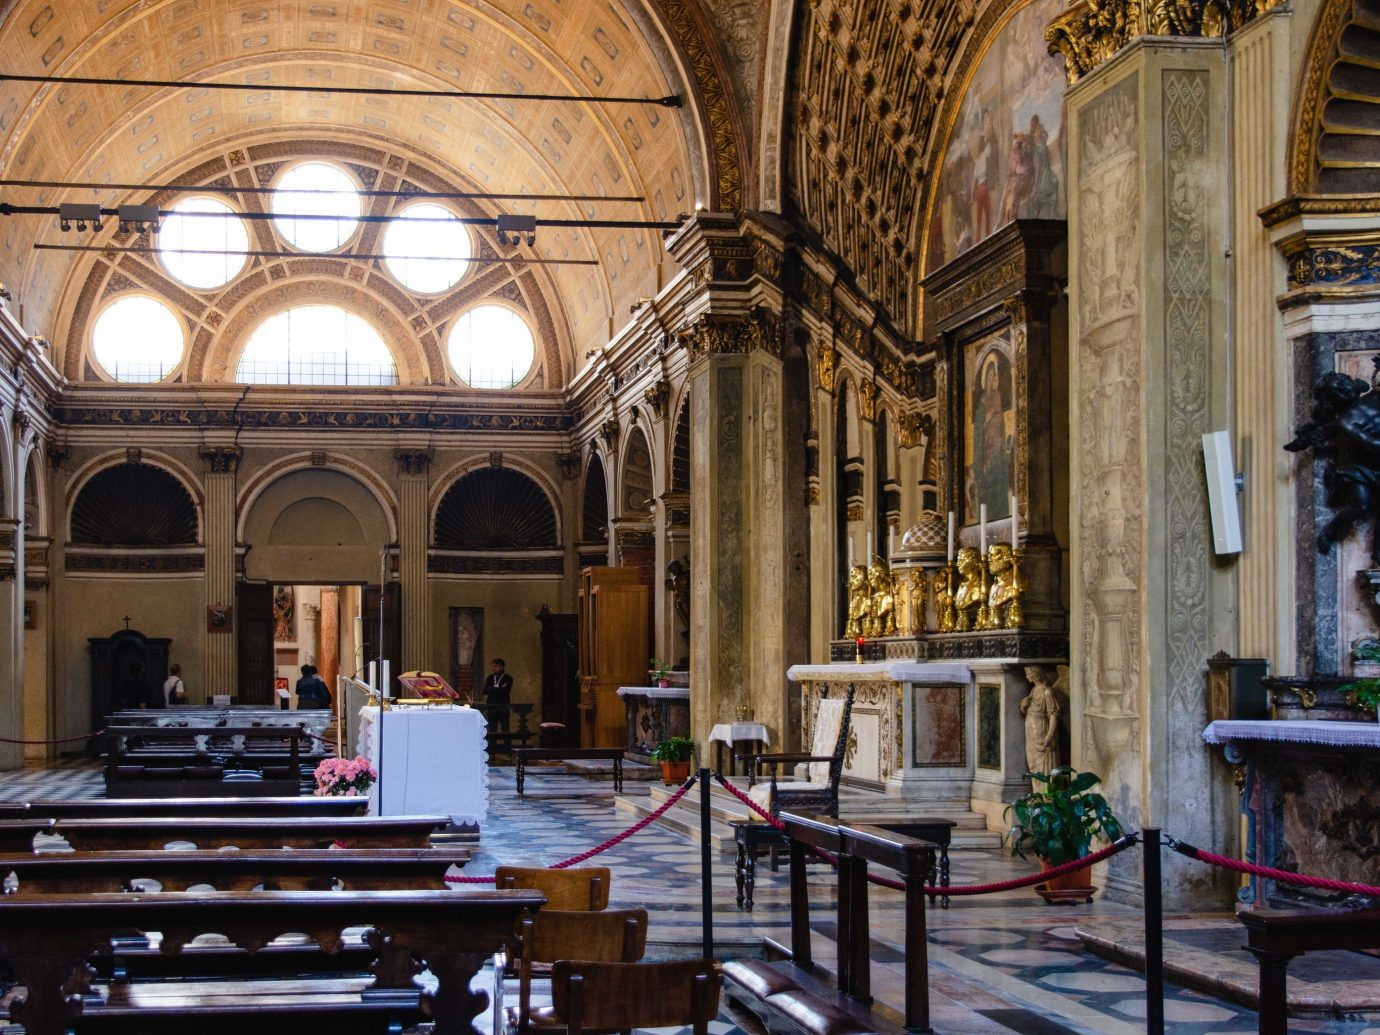 Arts + Culture Italy Milan indoor place of worship chapel building Church interior design cathedral basilica window abbey religious institute worship byzantine architecture arcade medieval architecture Lobby altar